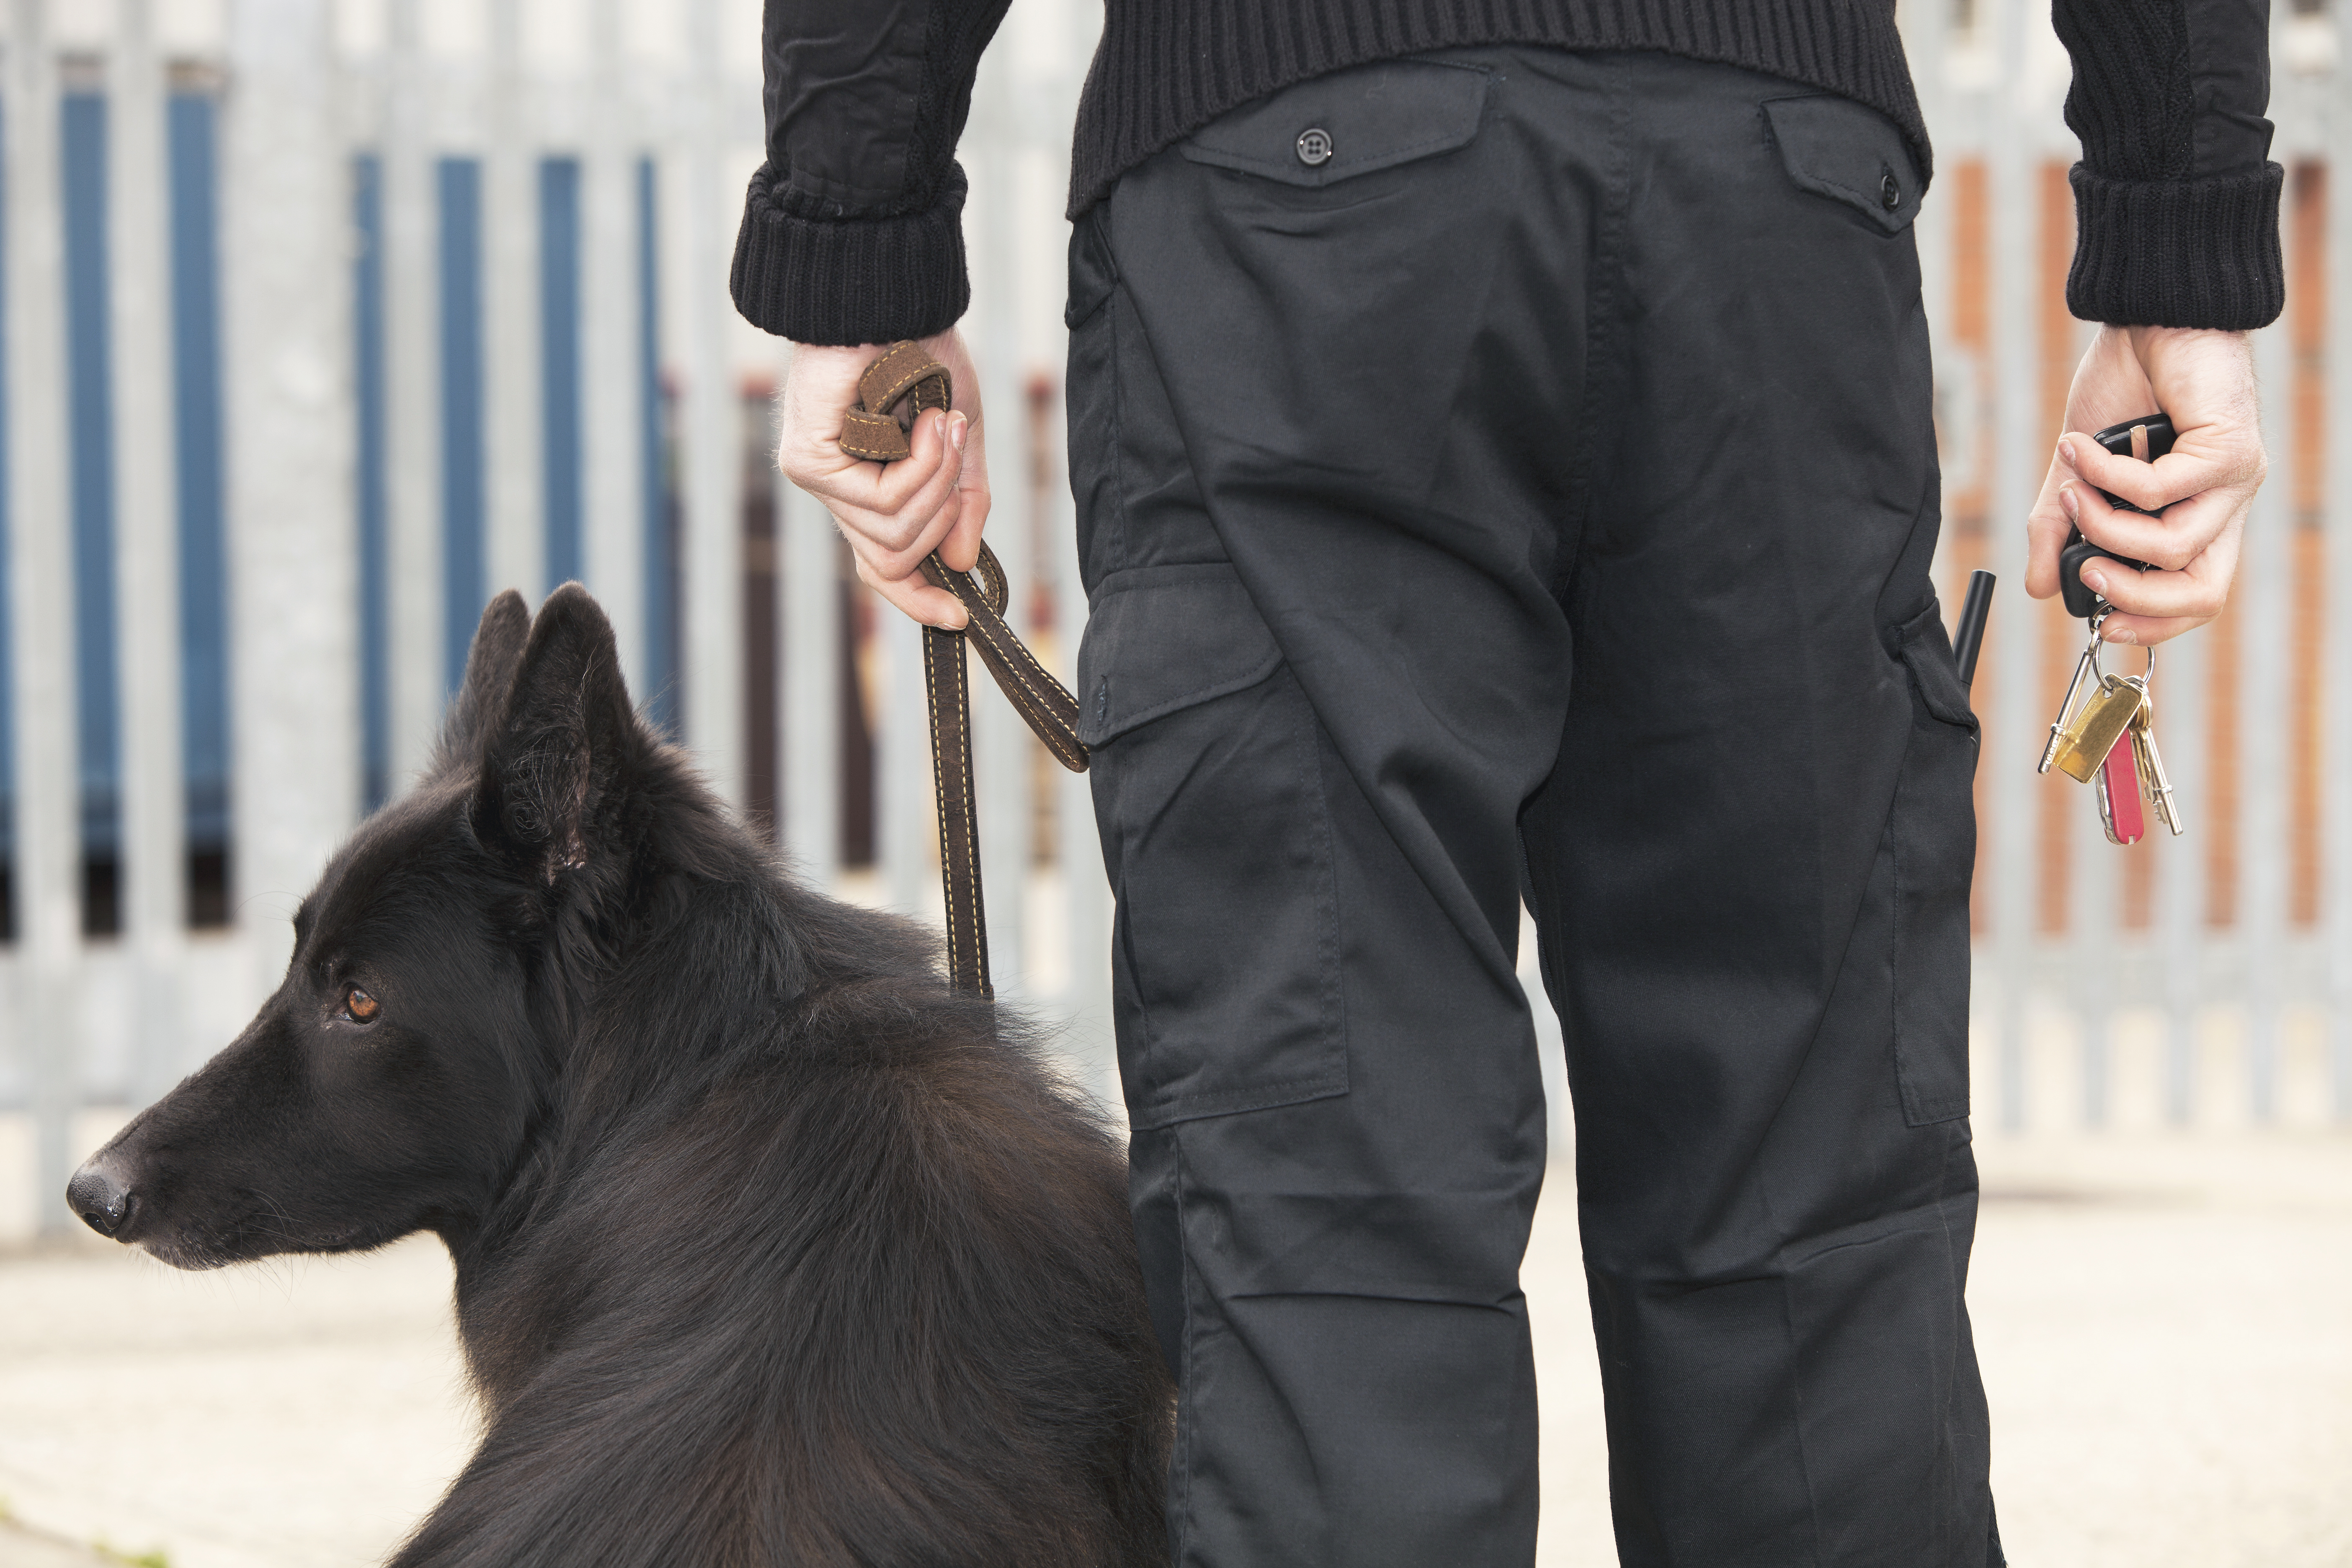 Guardia di sicurezza con cane